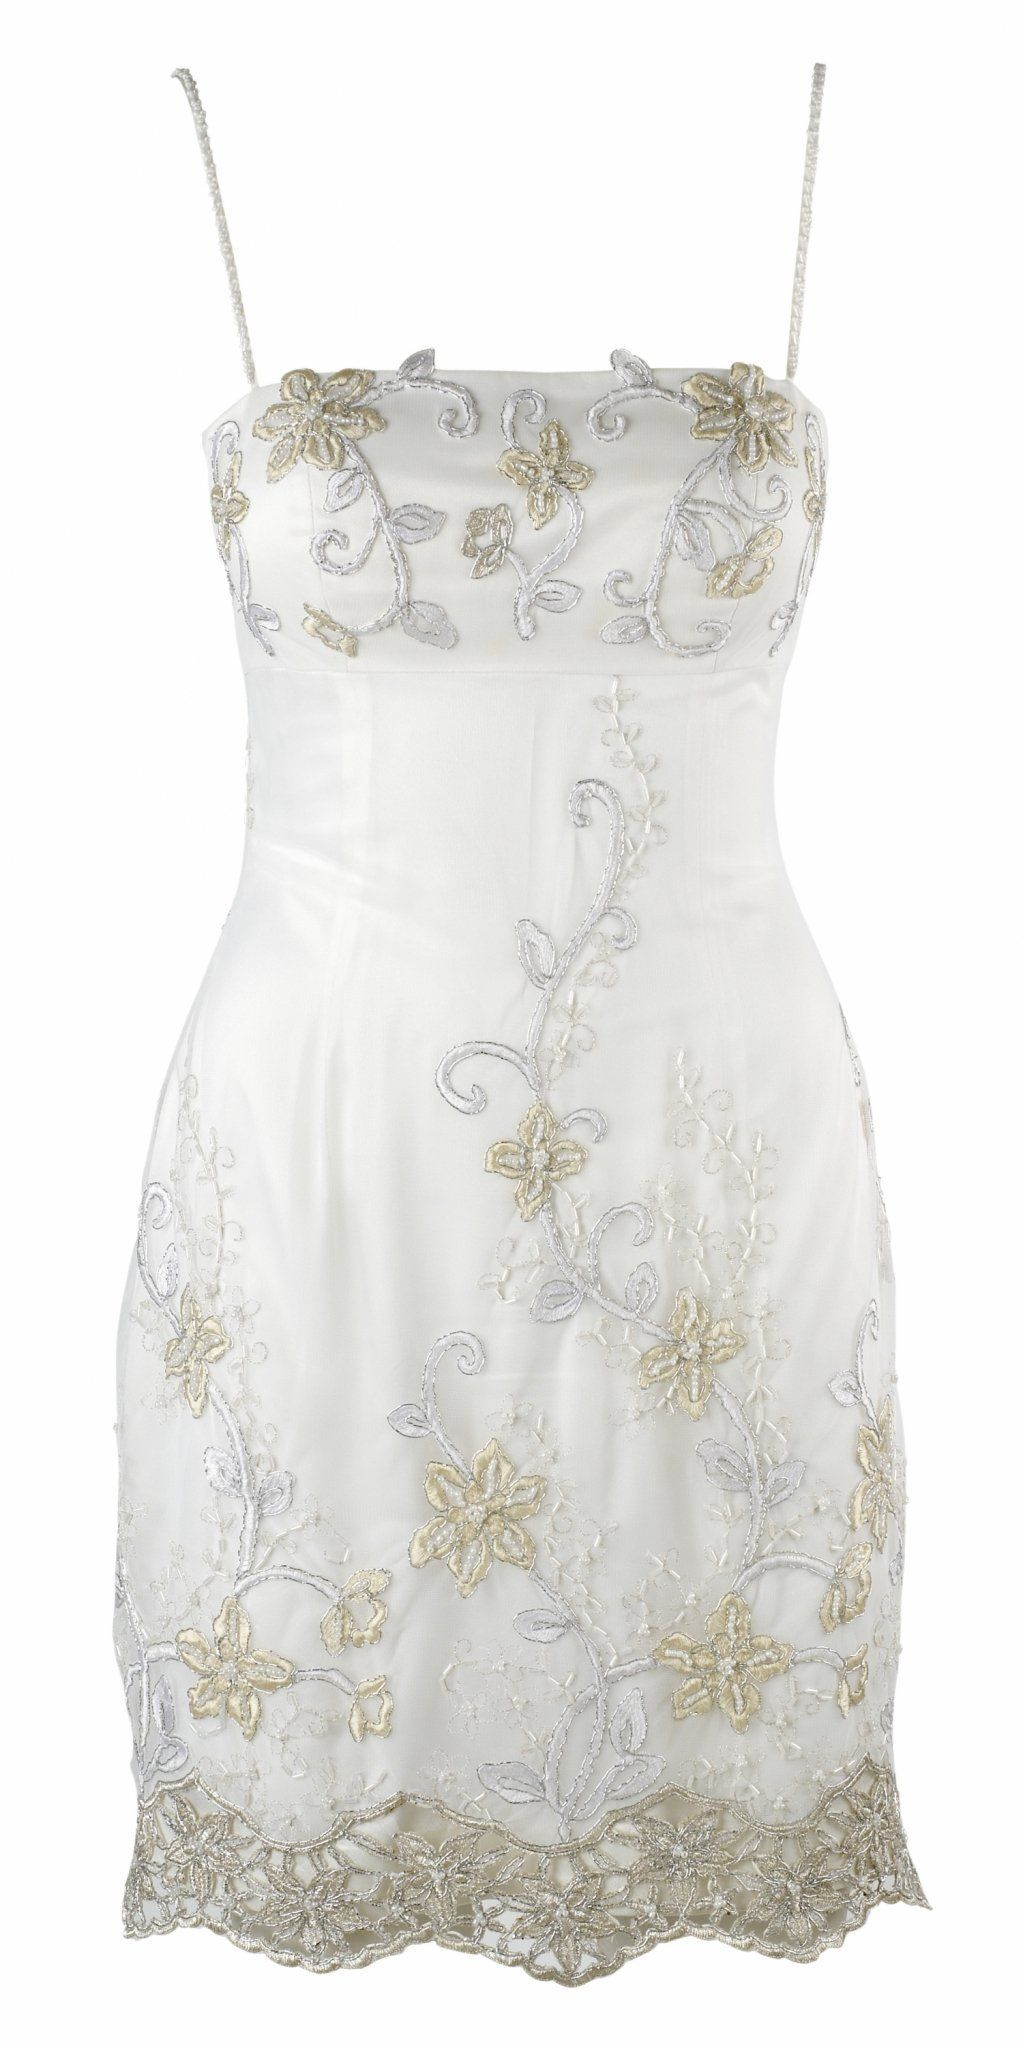 White, Gold &  Silver Embroidered White Couture Dress by Eric Way